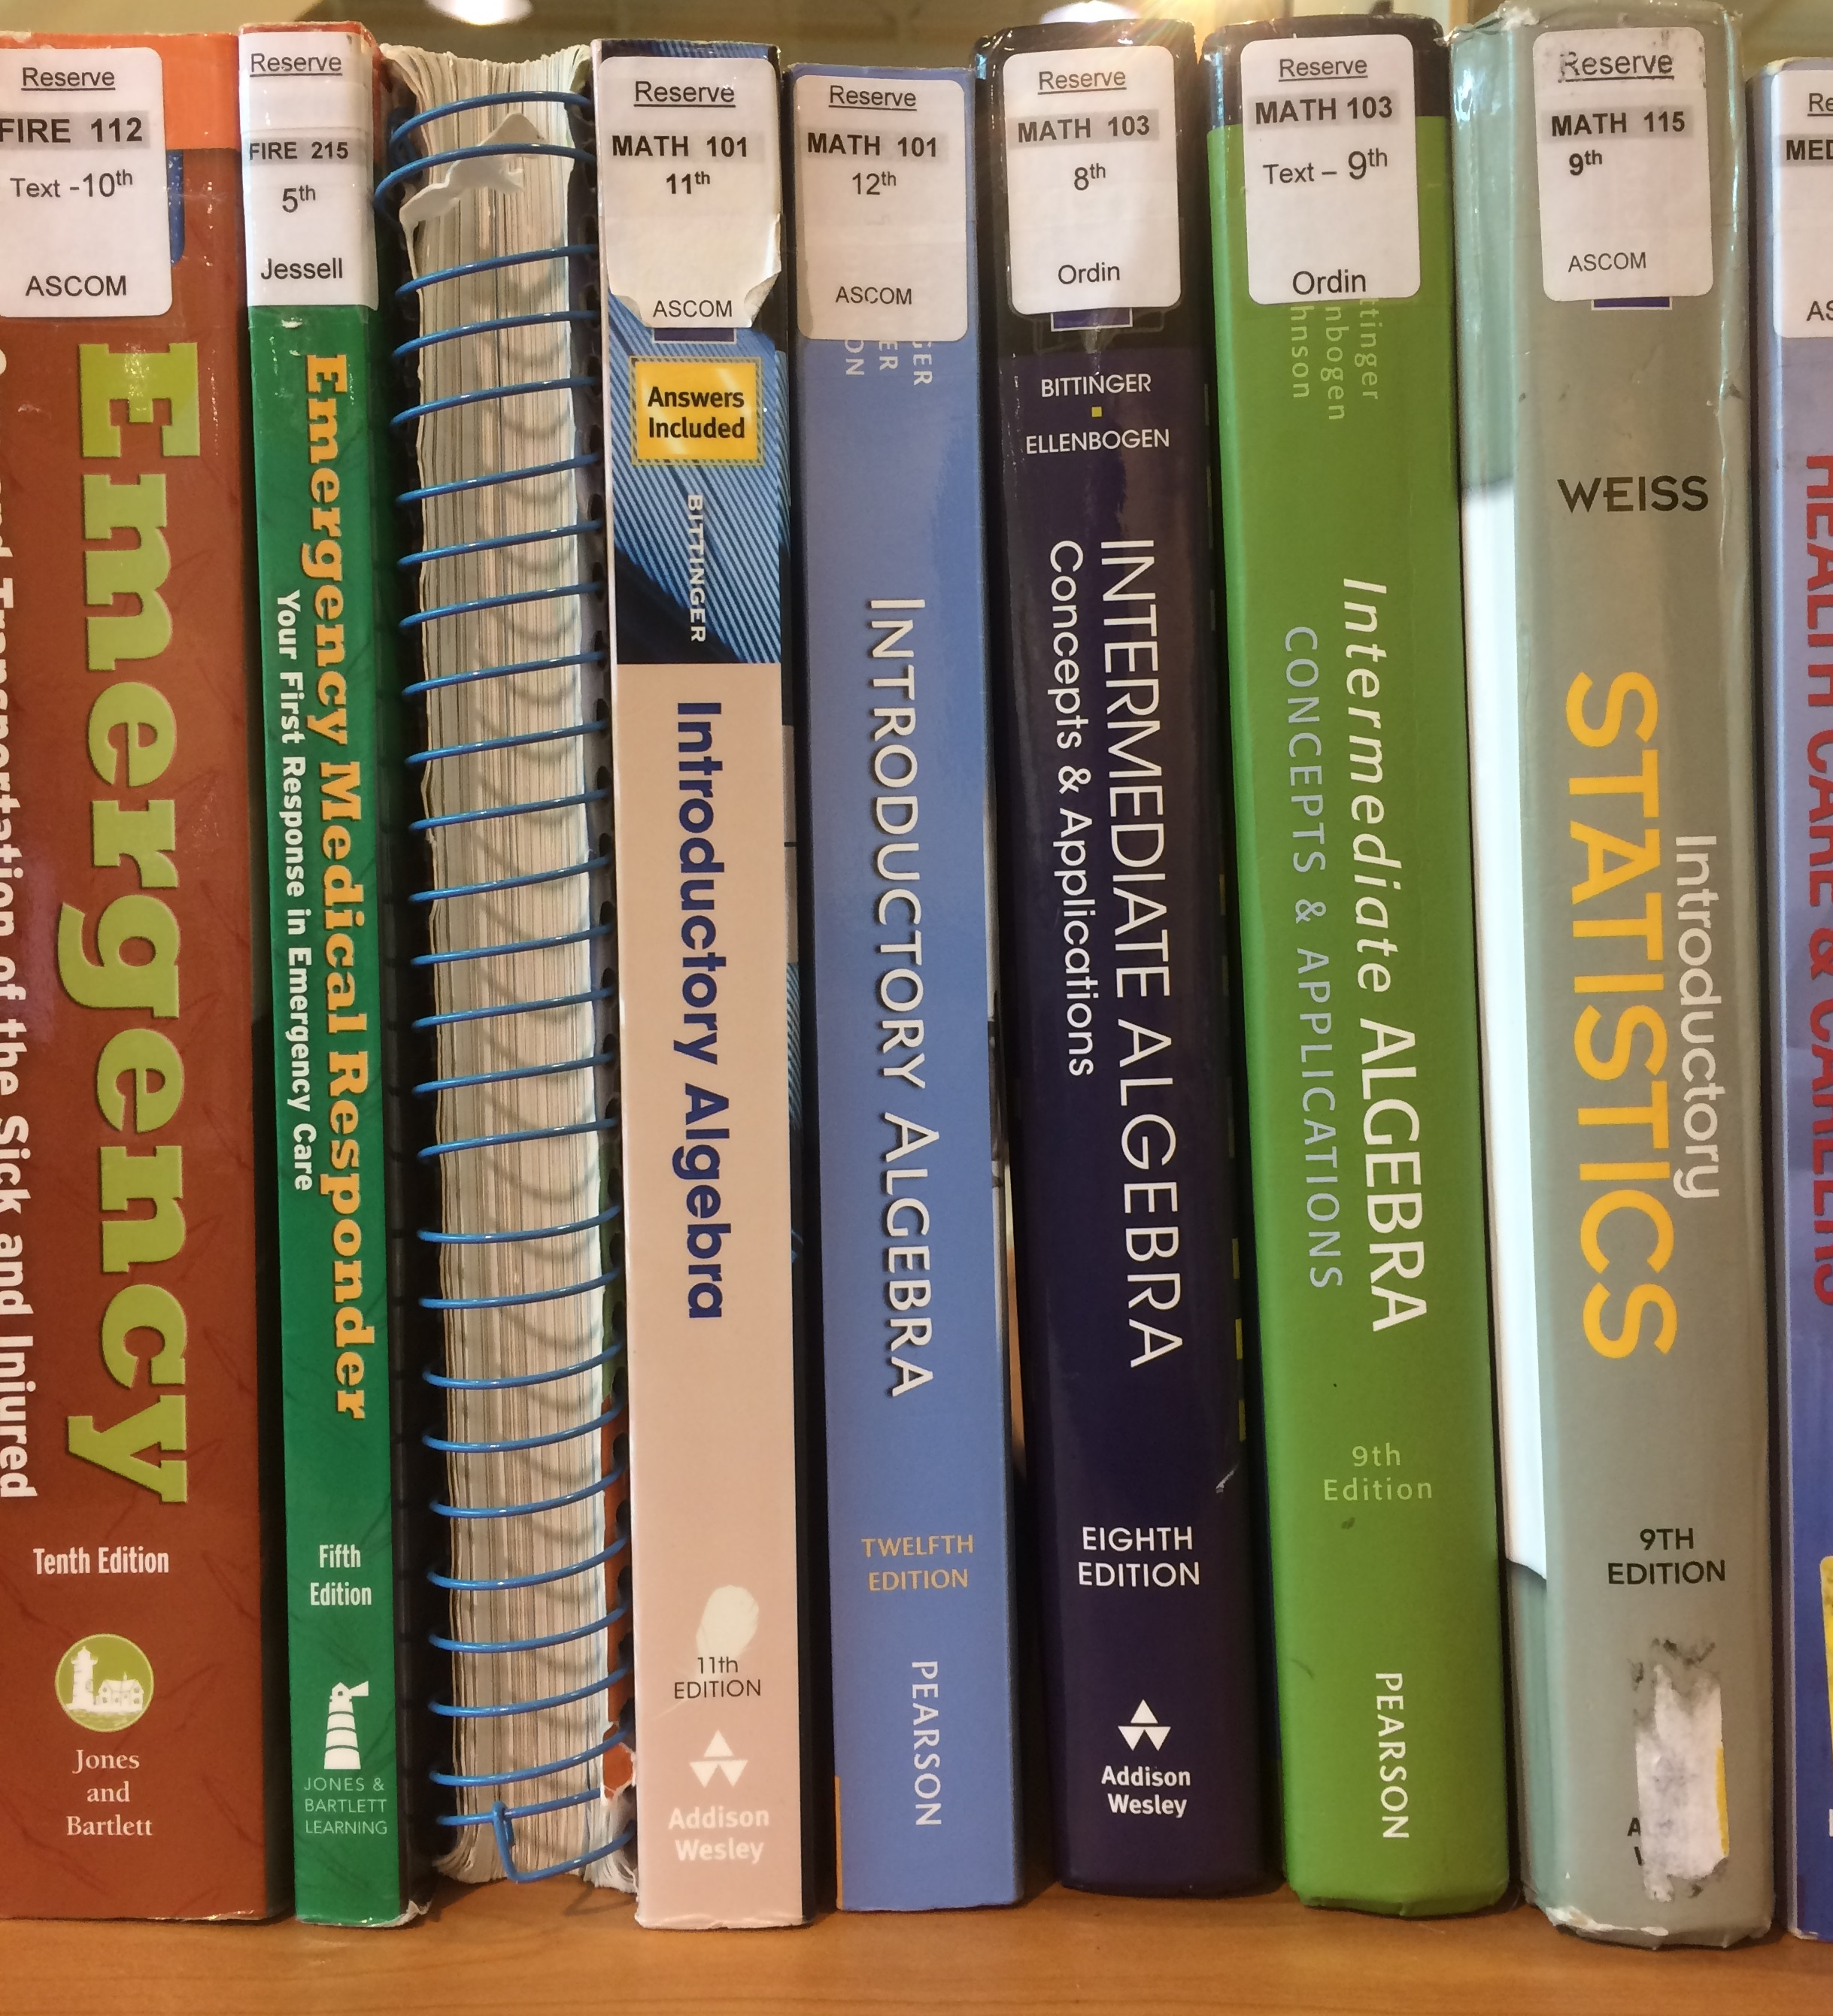 Picture of Textbooks at IVC Library